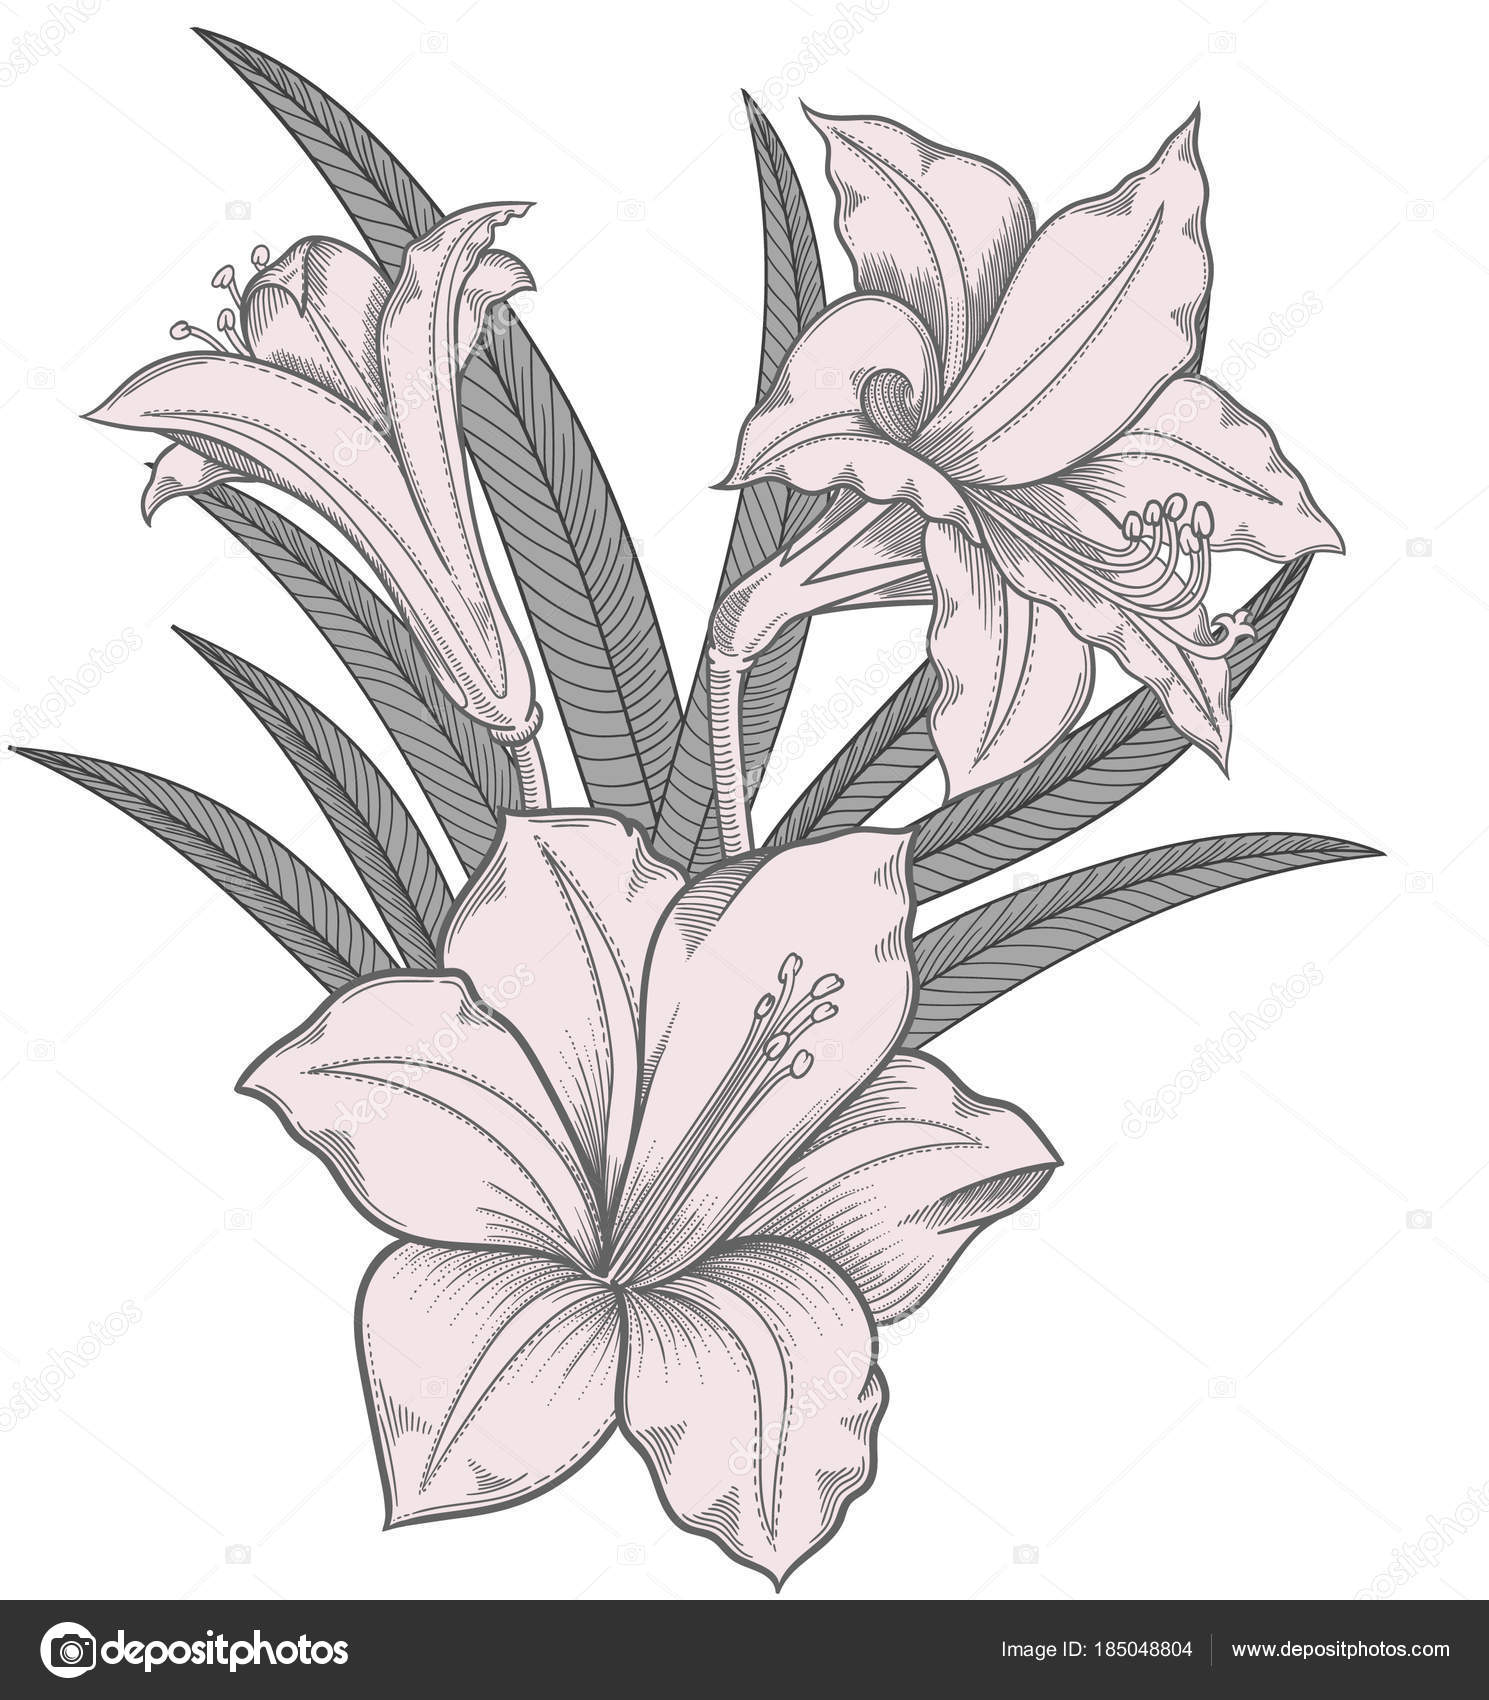 Blooming Lily Flowers Detailed Hand Drawn Vector Illustration